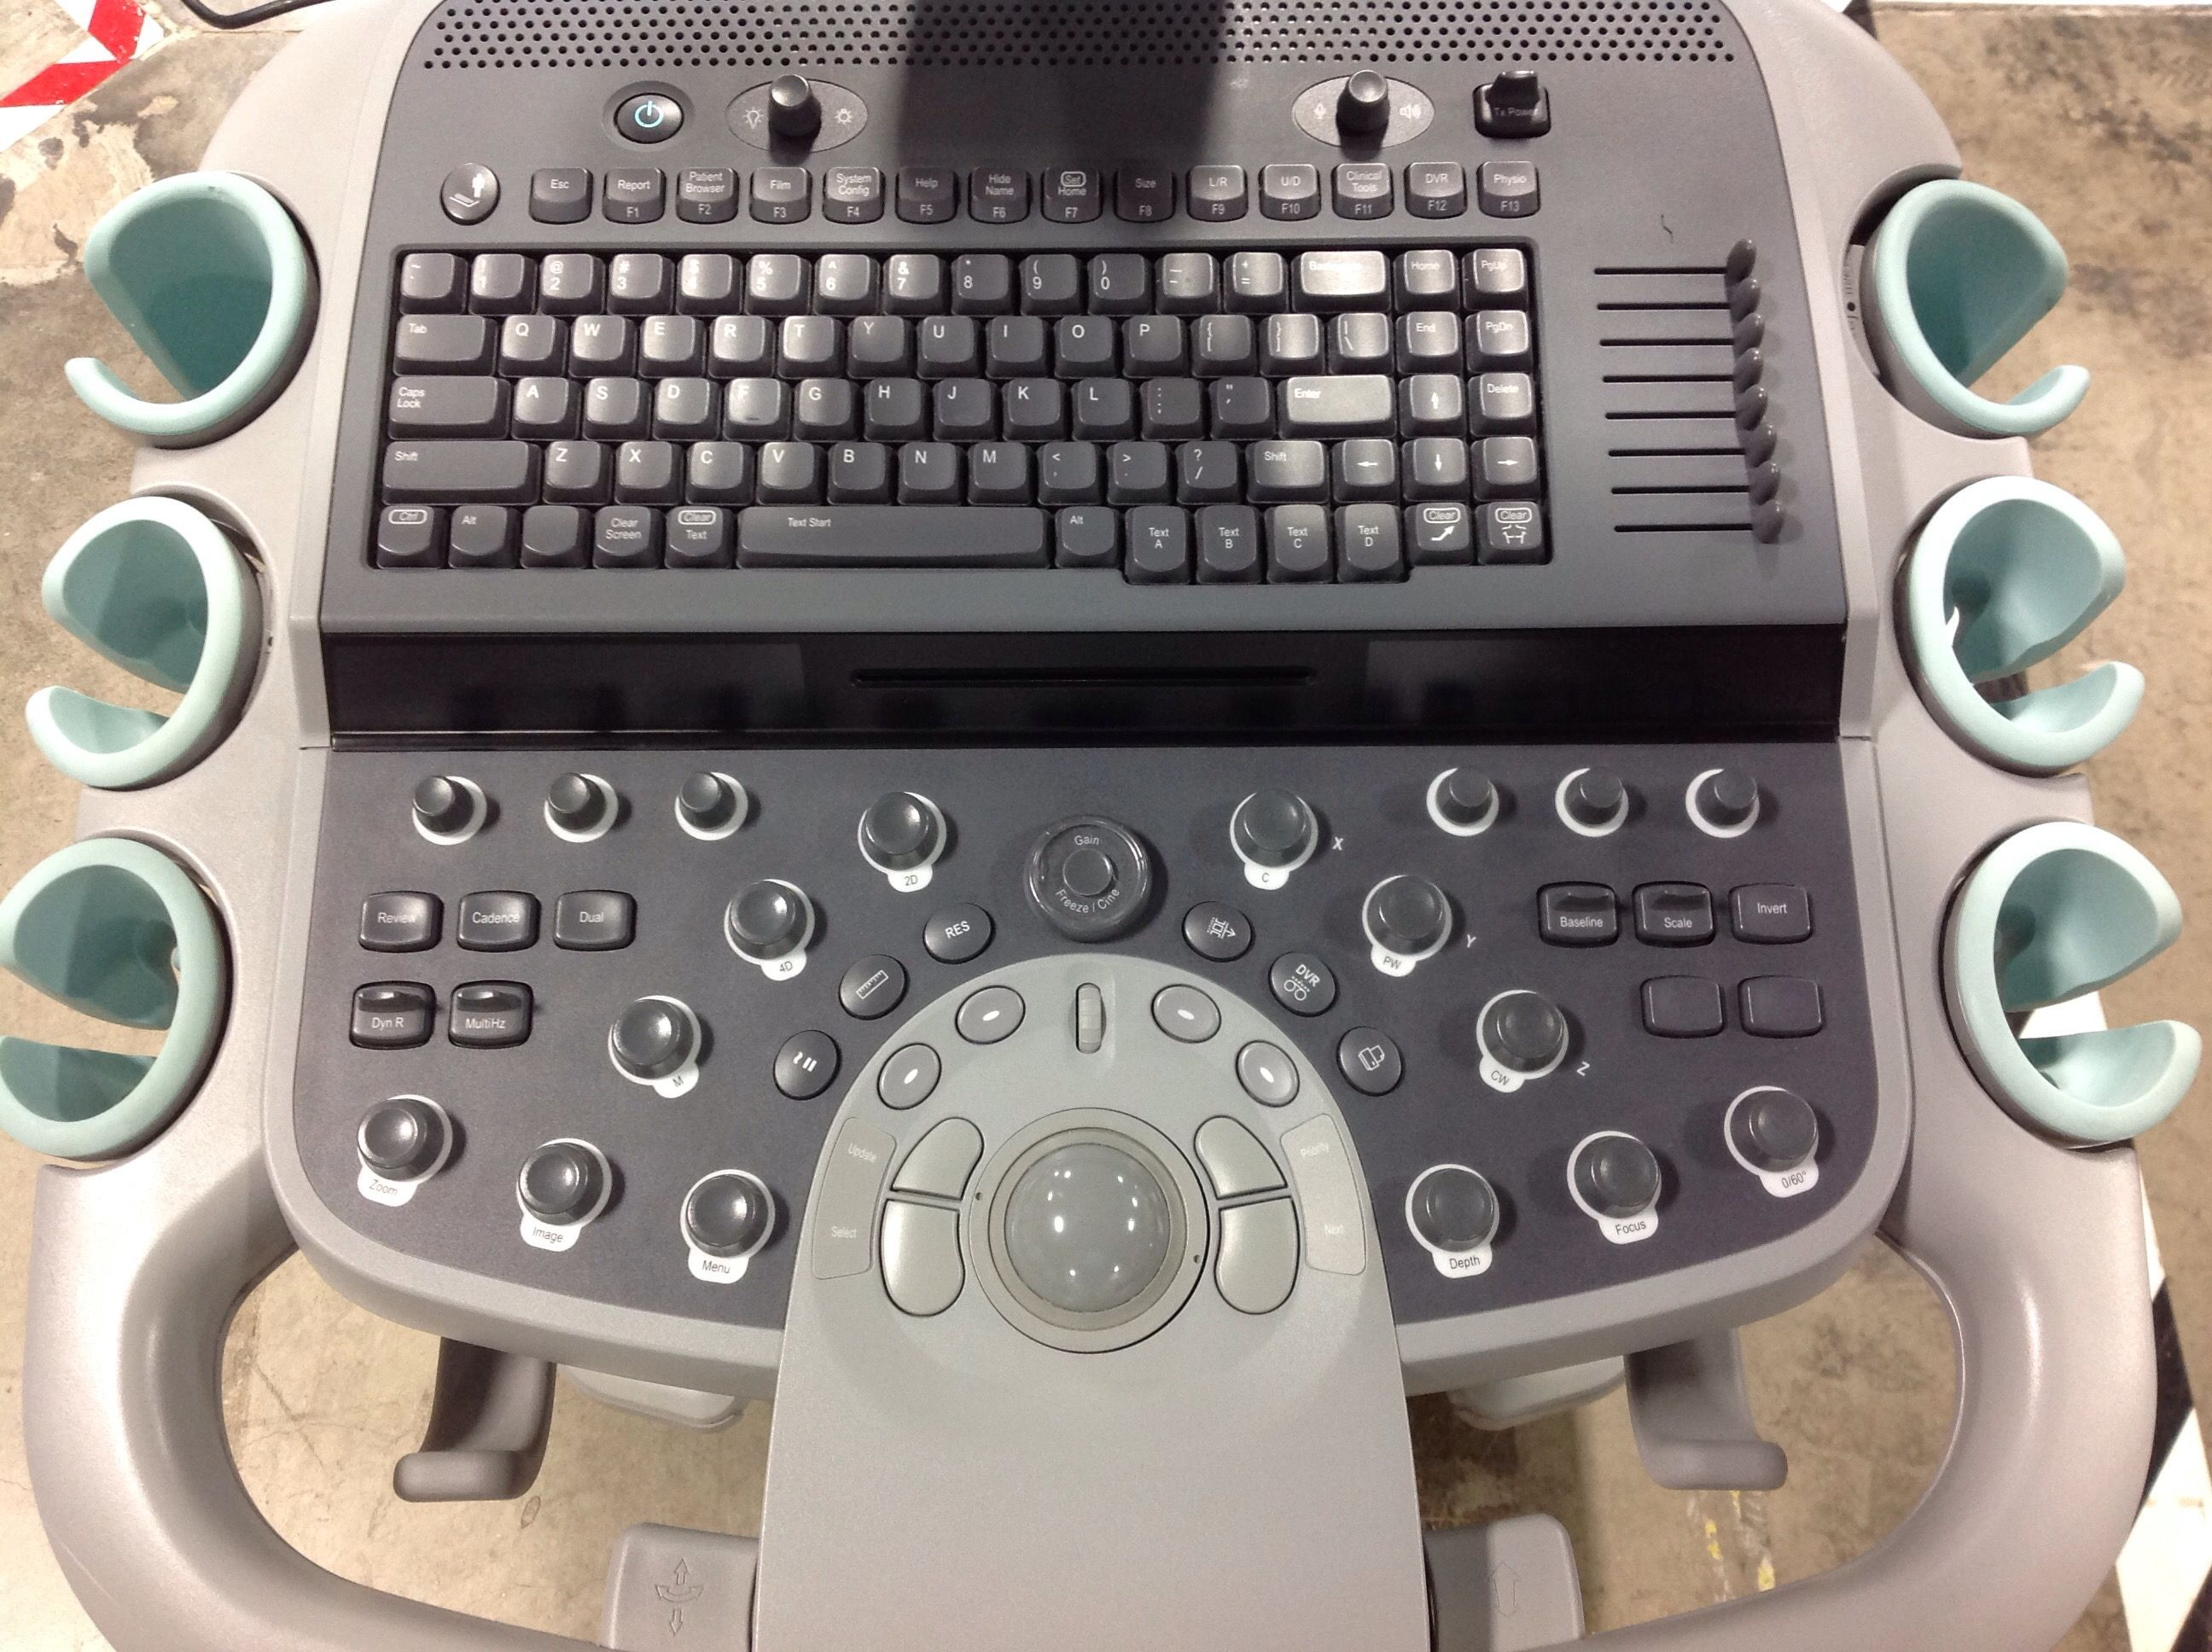 Refurbished Siemens Acuson Sc2000 Ultrasound Machine For